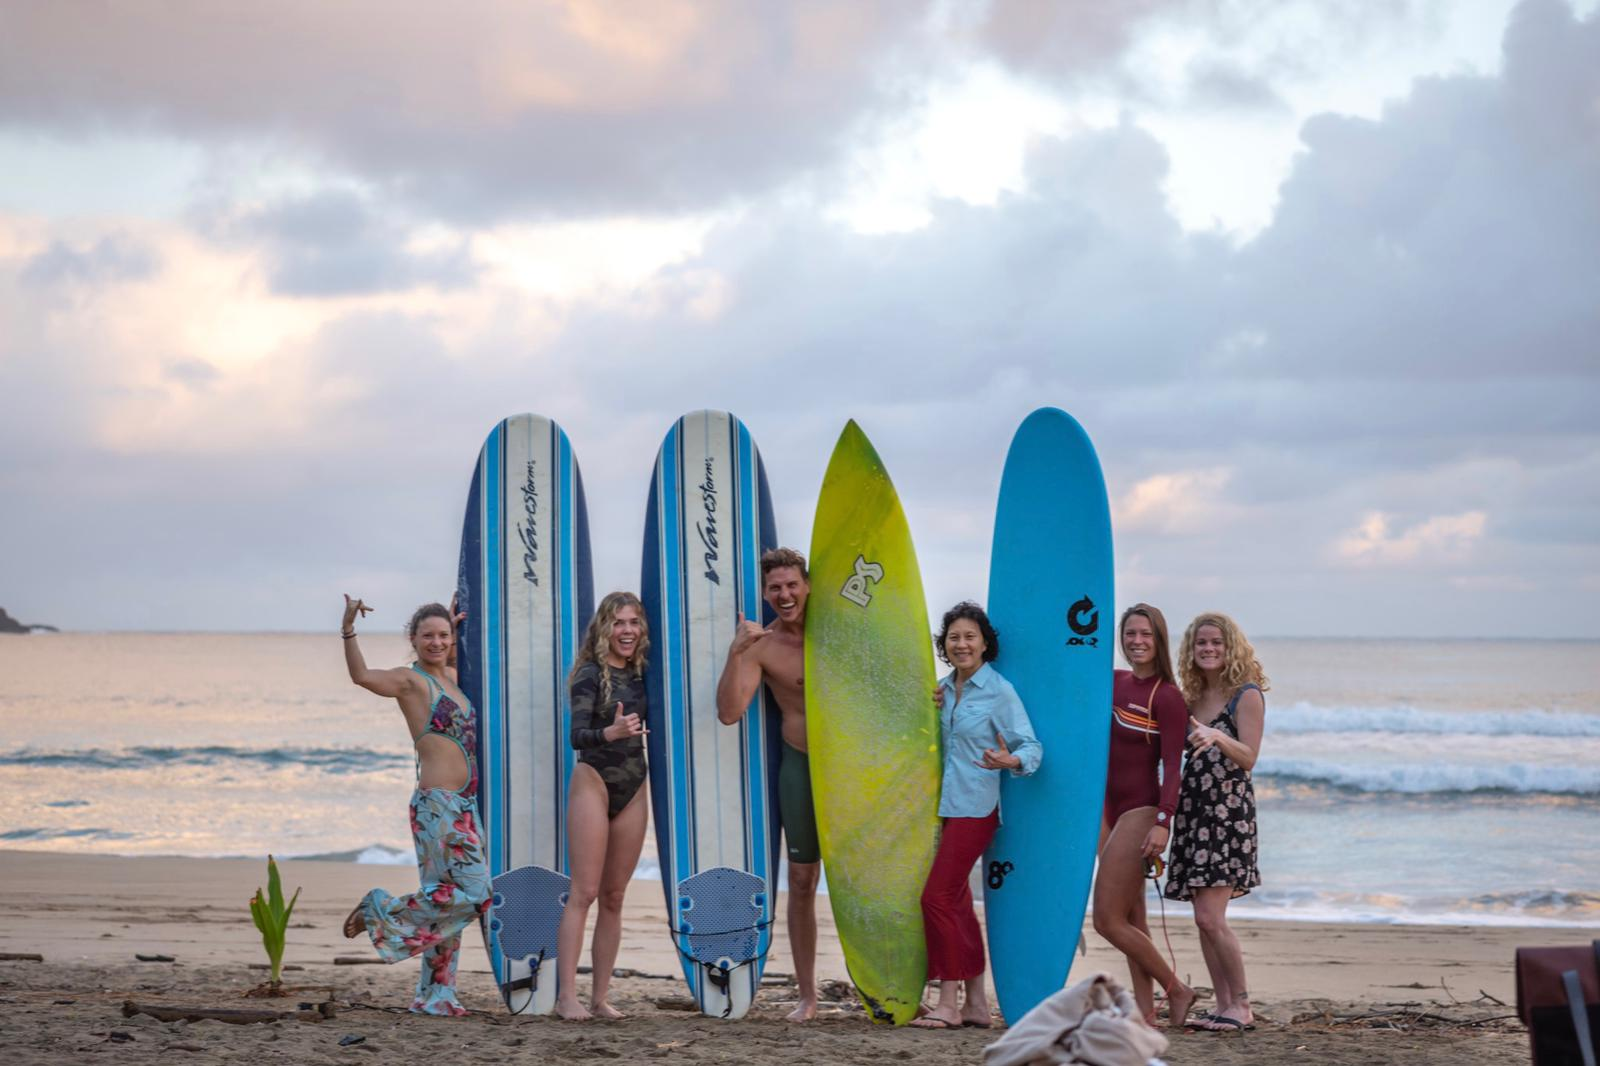 Surf's Up! But Who First?